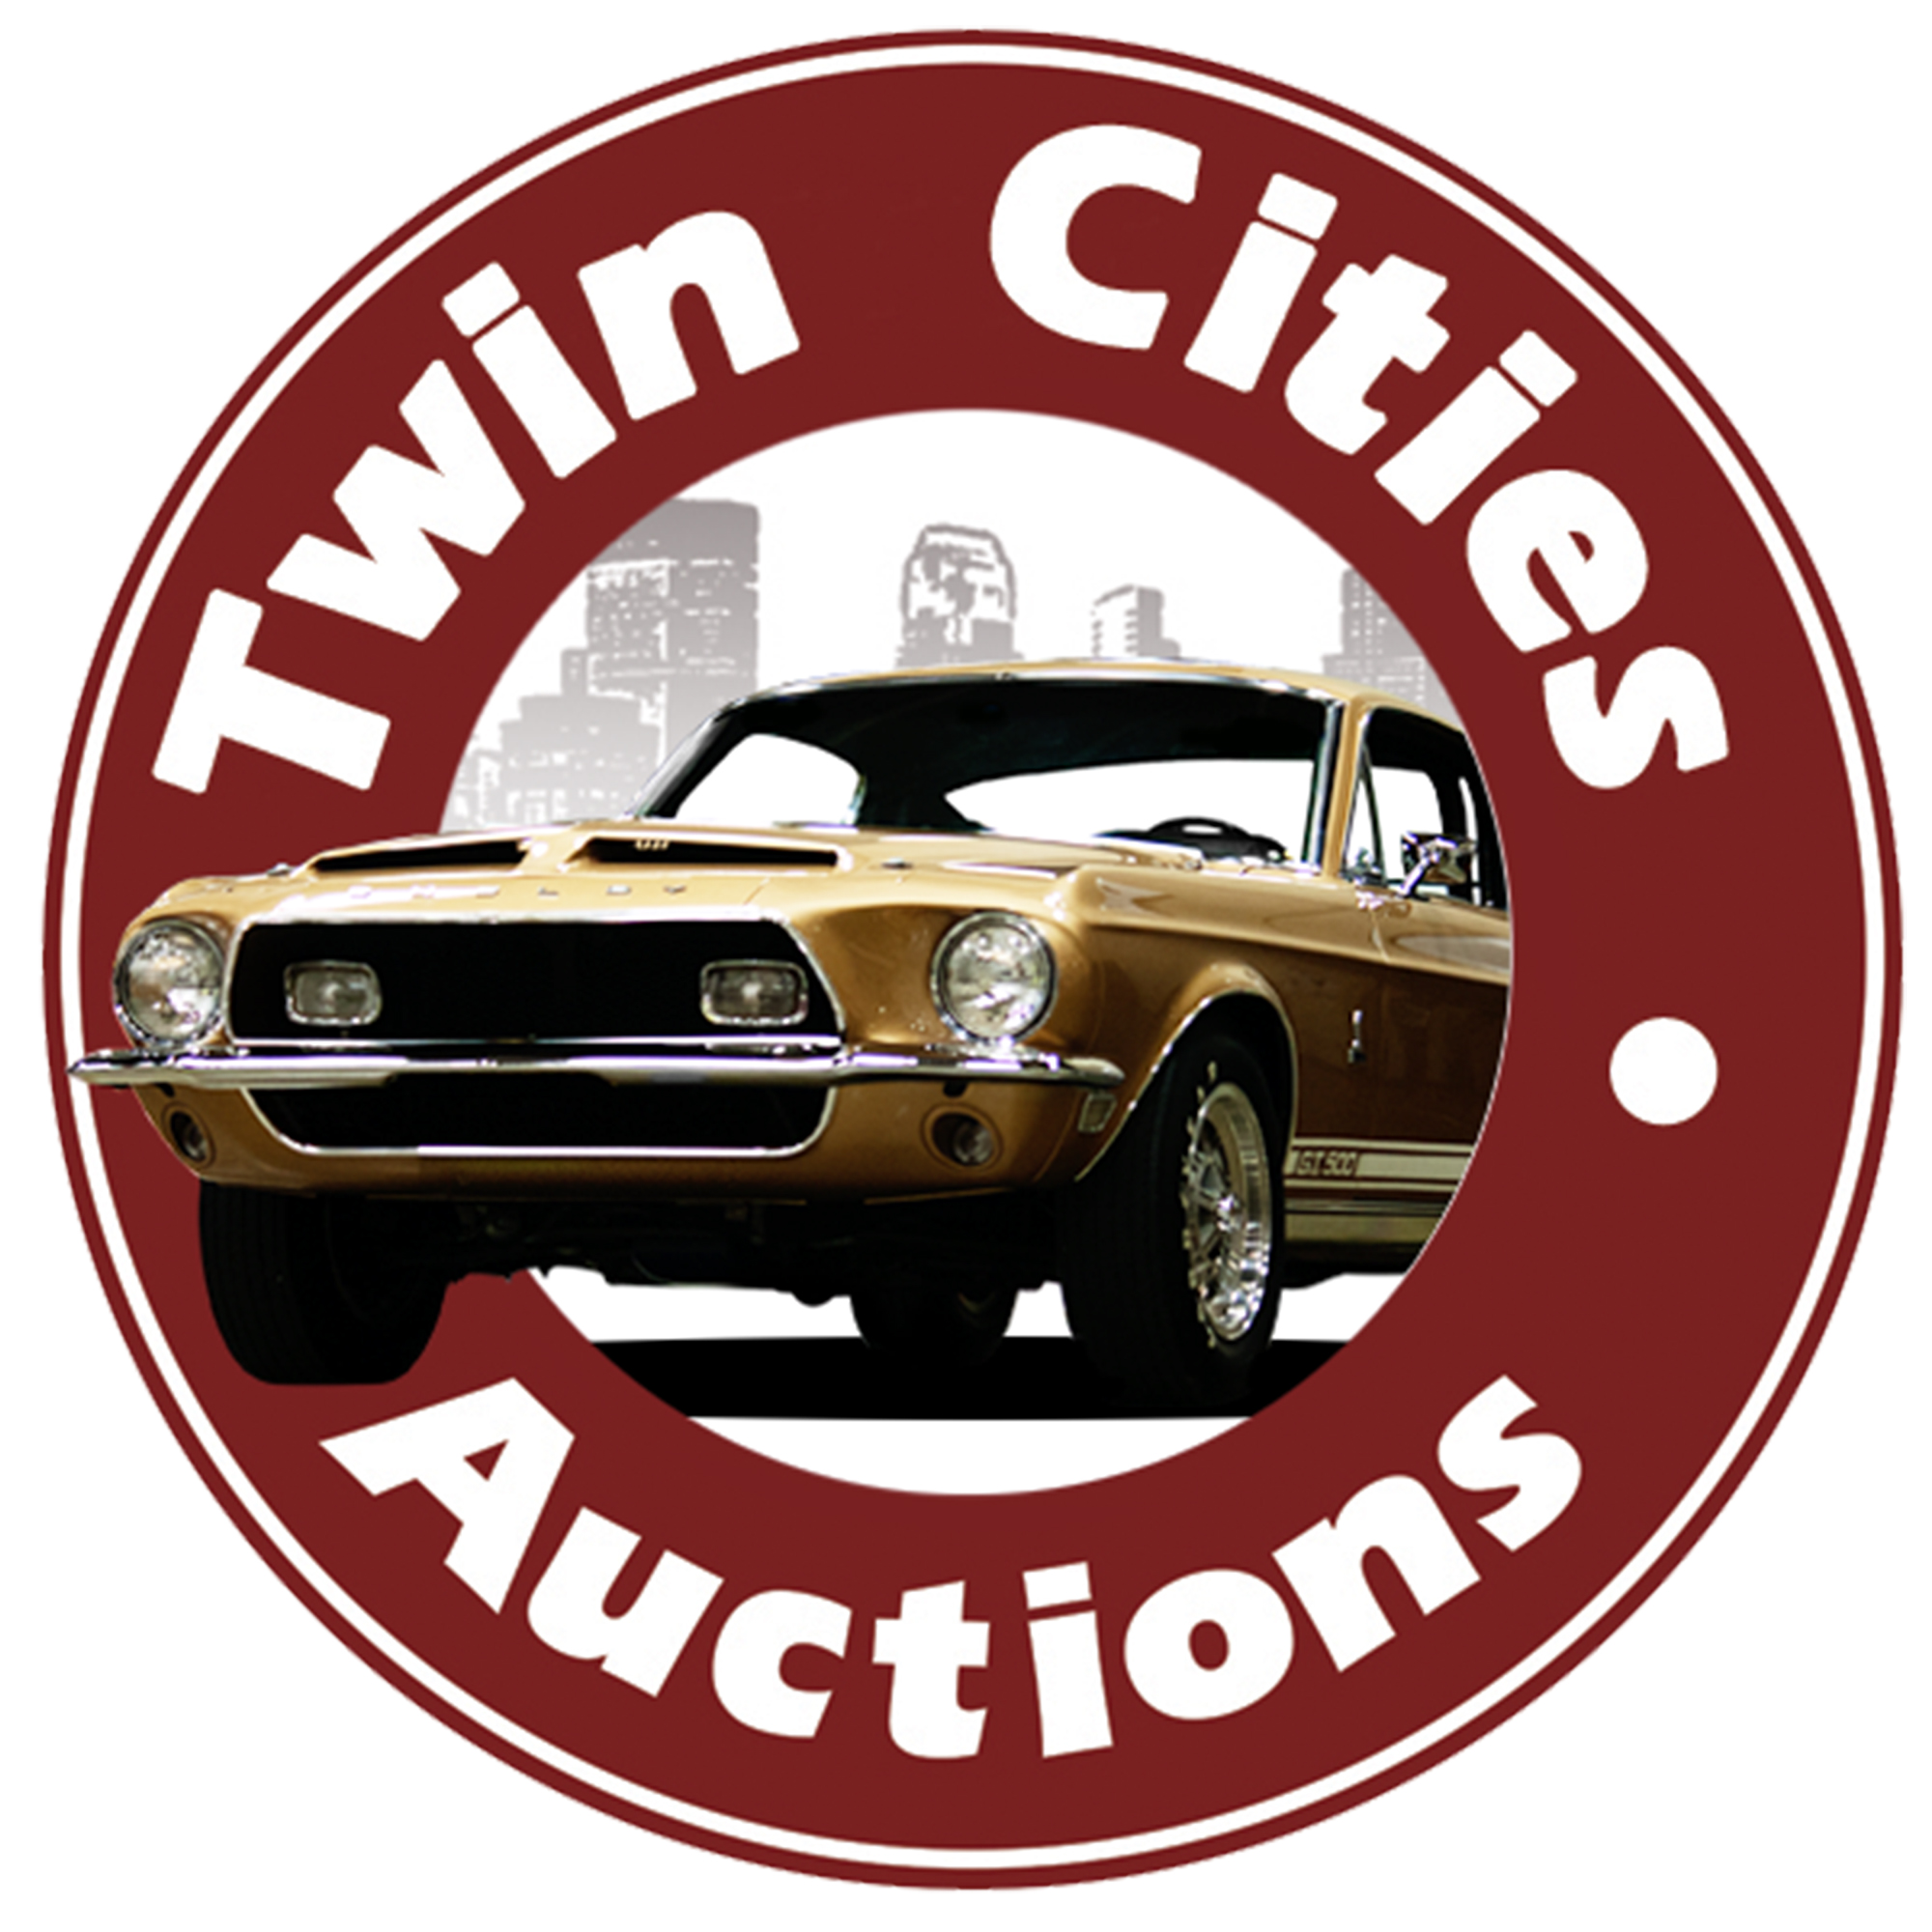 33rd Annual Twin cities Class Car and Truck Auction